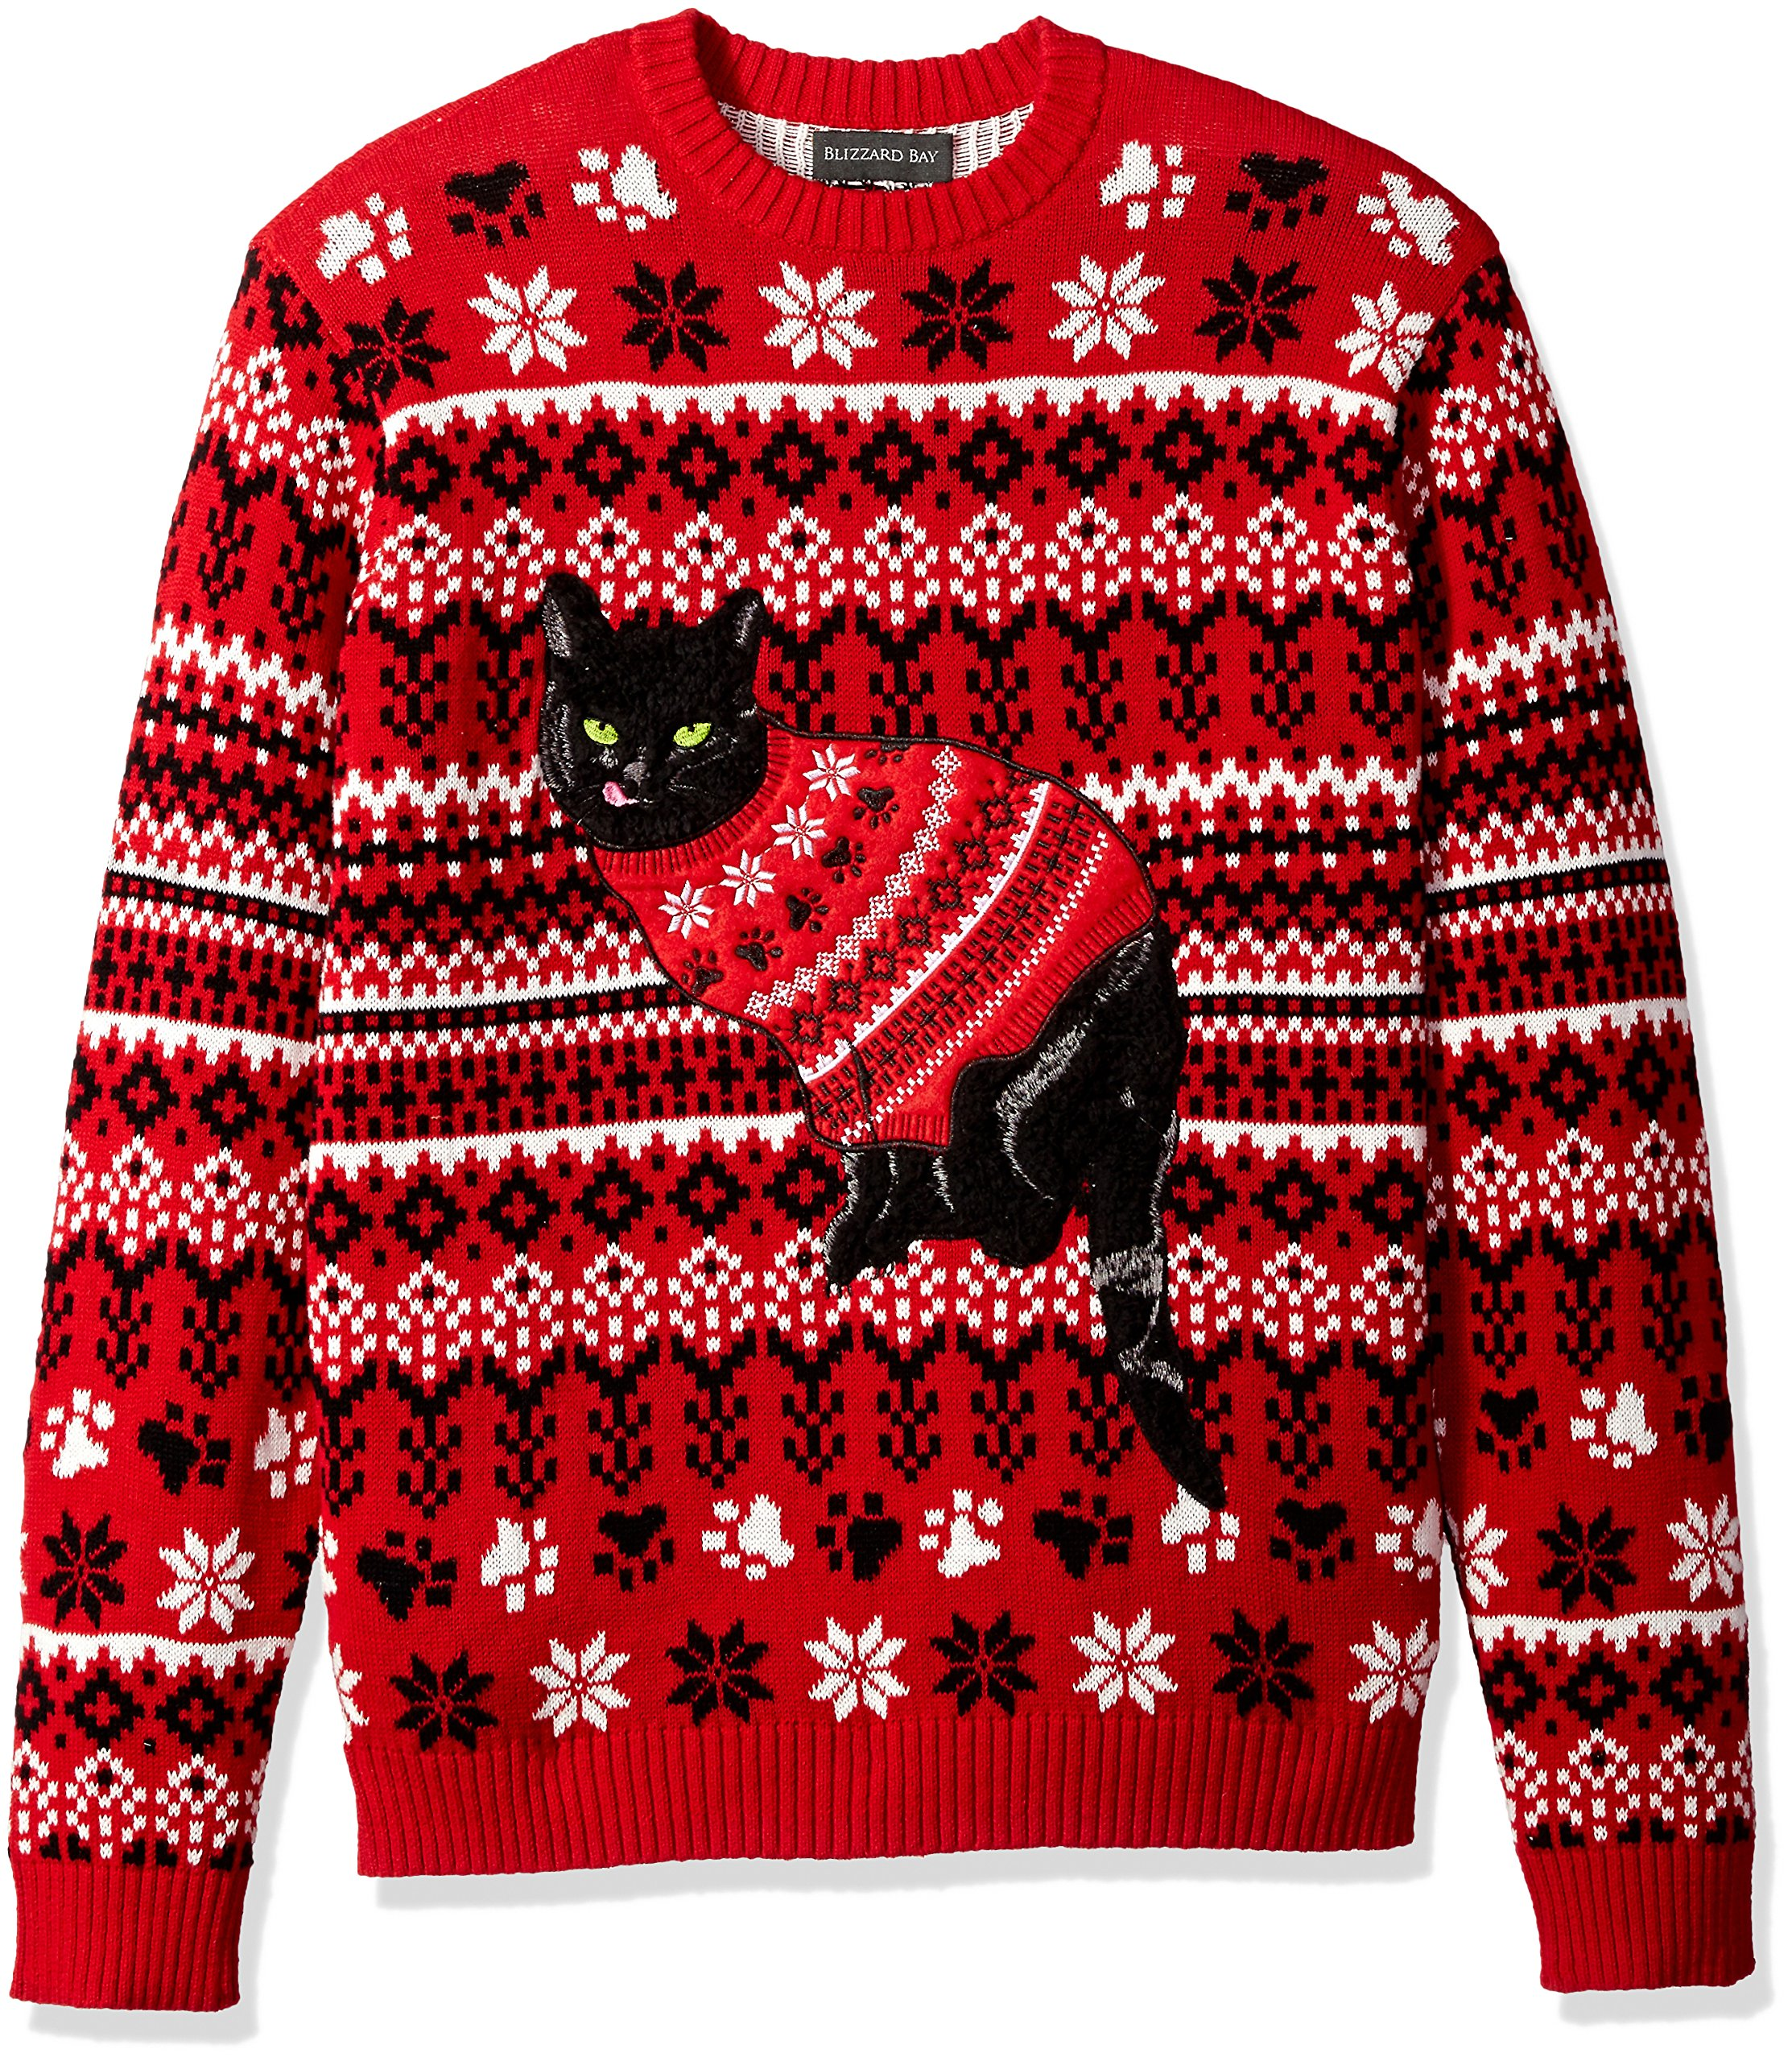 Blizzard Bay Men's Ugly Christmas Sweater Cat, Black/Red, Medium by Blizzard Bay